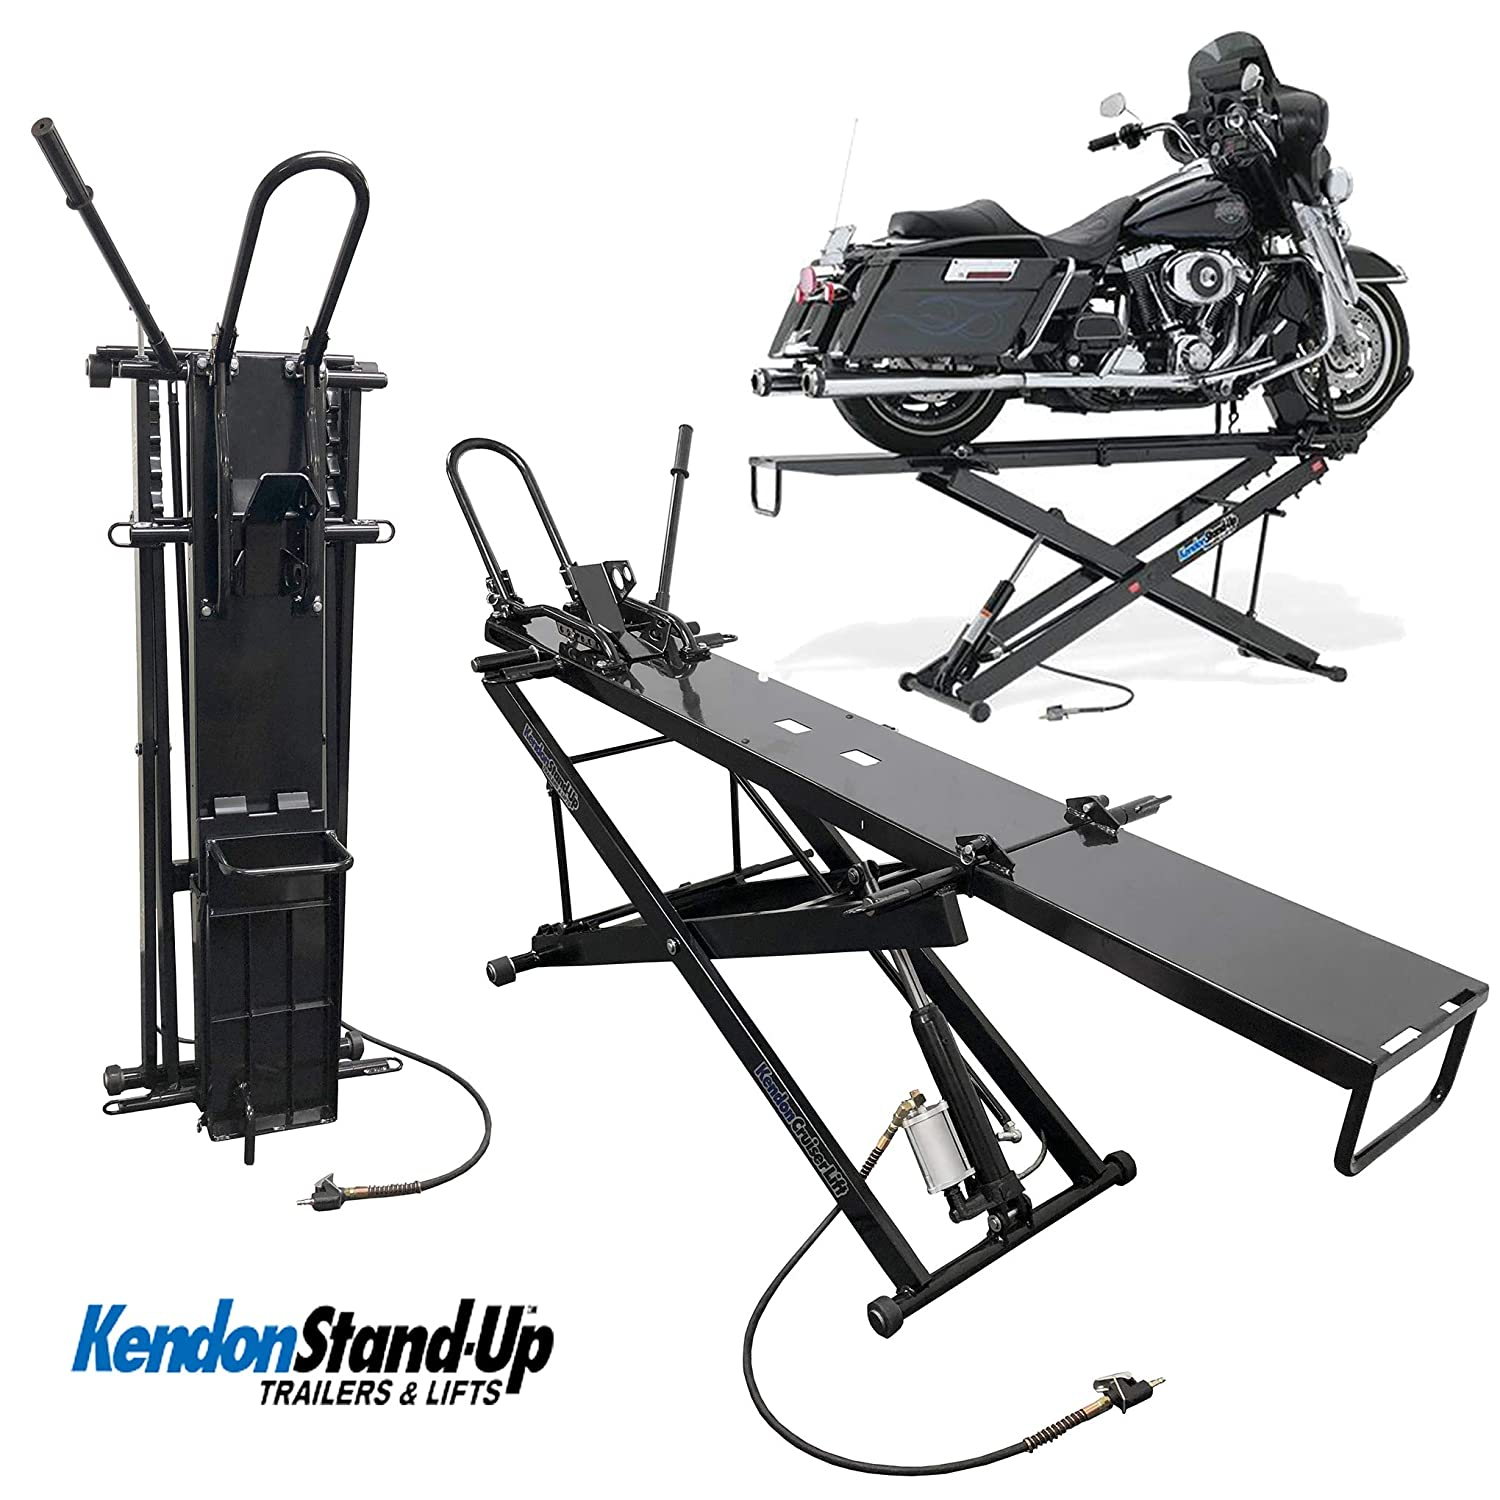 Kendon Folding Stand-Up ATV Motorcycle Table Lift For Harley